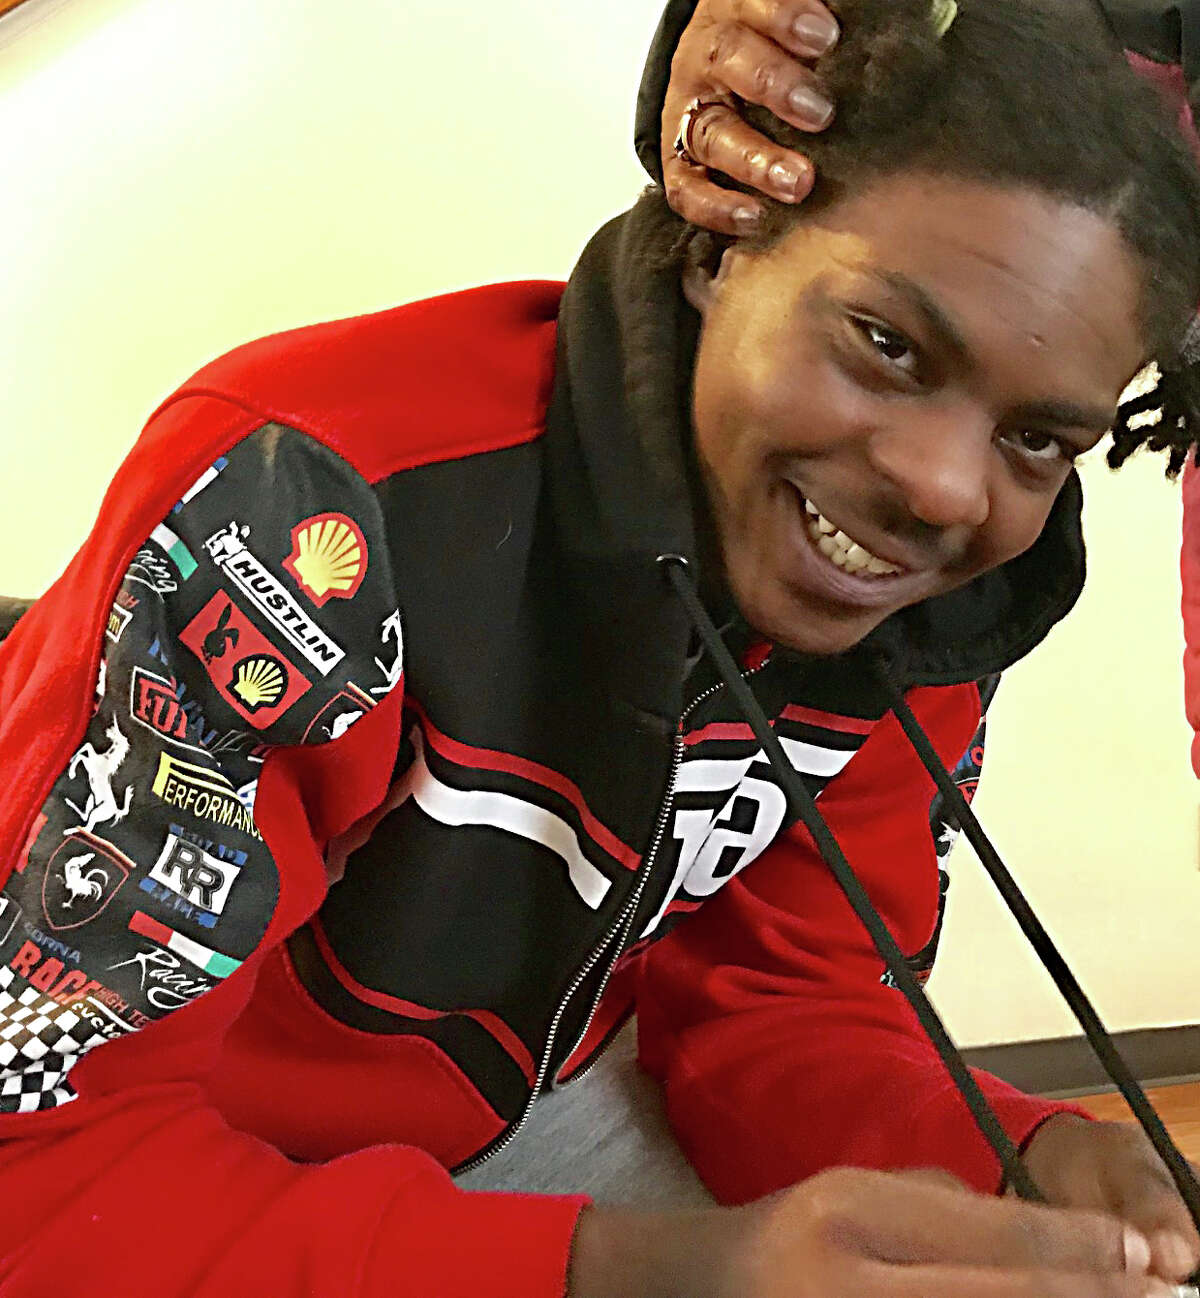 Ellazar Williams, shot by police in August and paralyzed as a result of the incident, smiles in his North Albany apartment after getting a pat on the head from Alice Green,executive director of the Center for Law and Justice, on Jan. 27, 2019. (Paul Grondahl/Times Union)